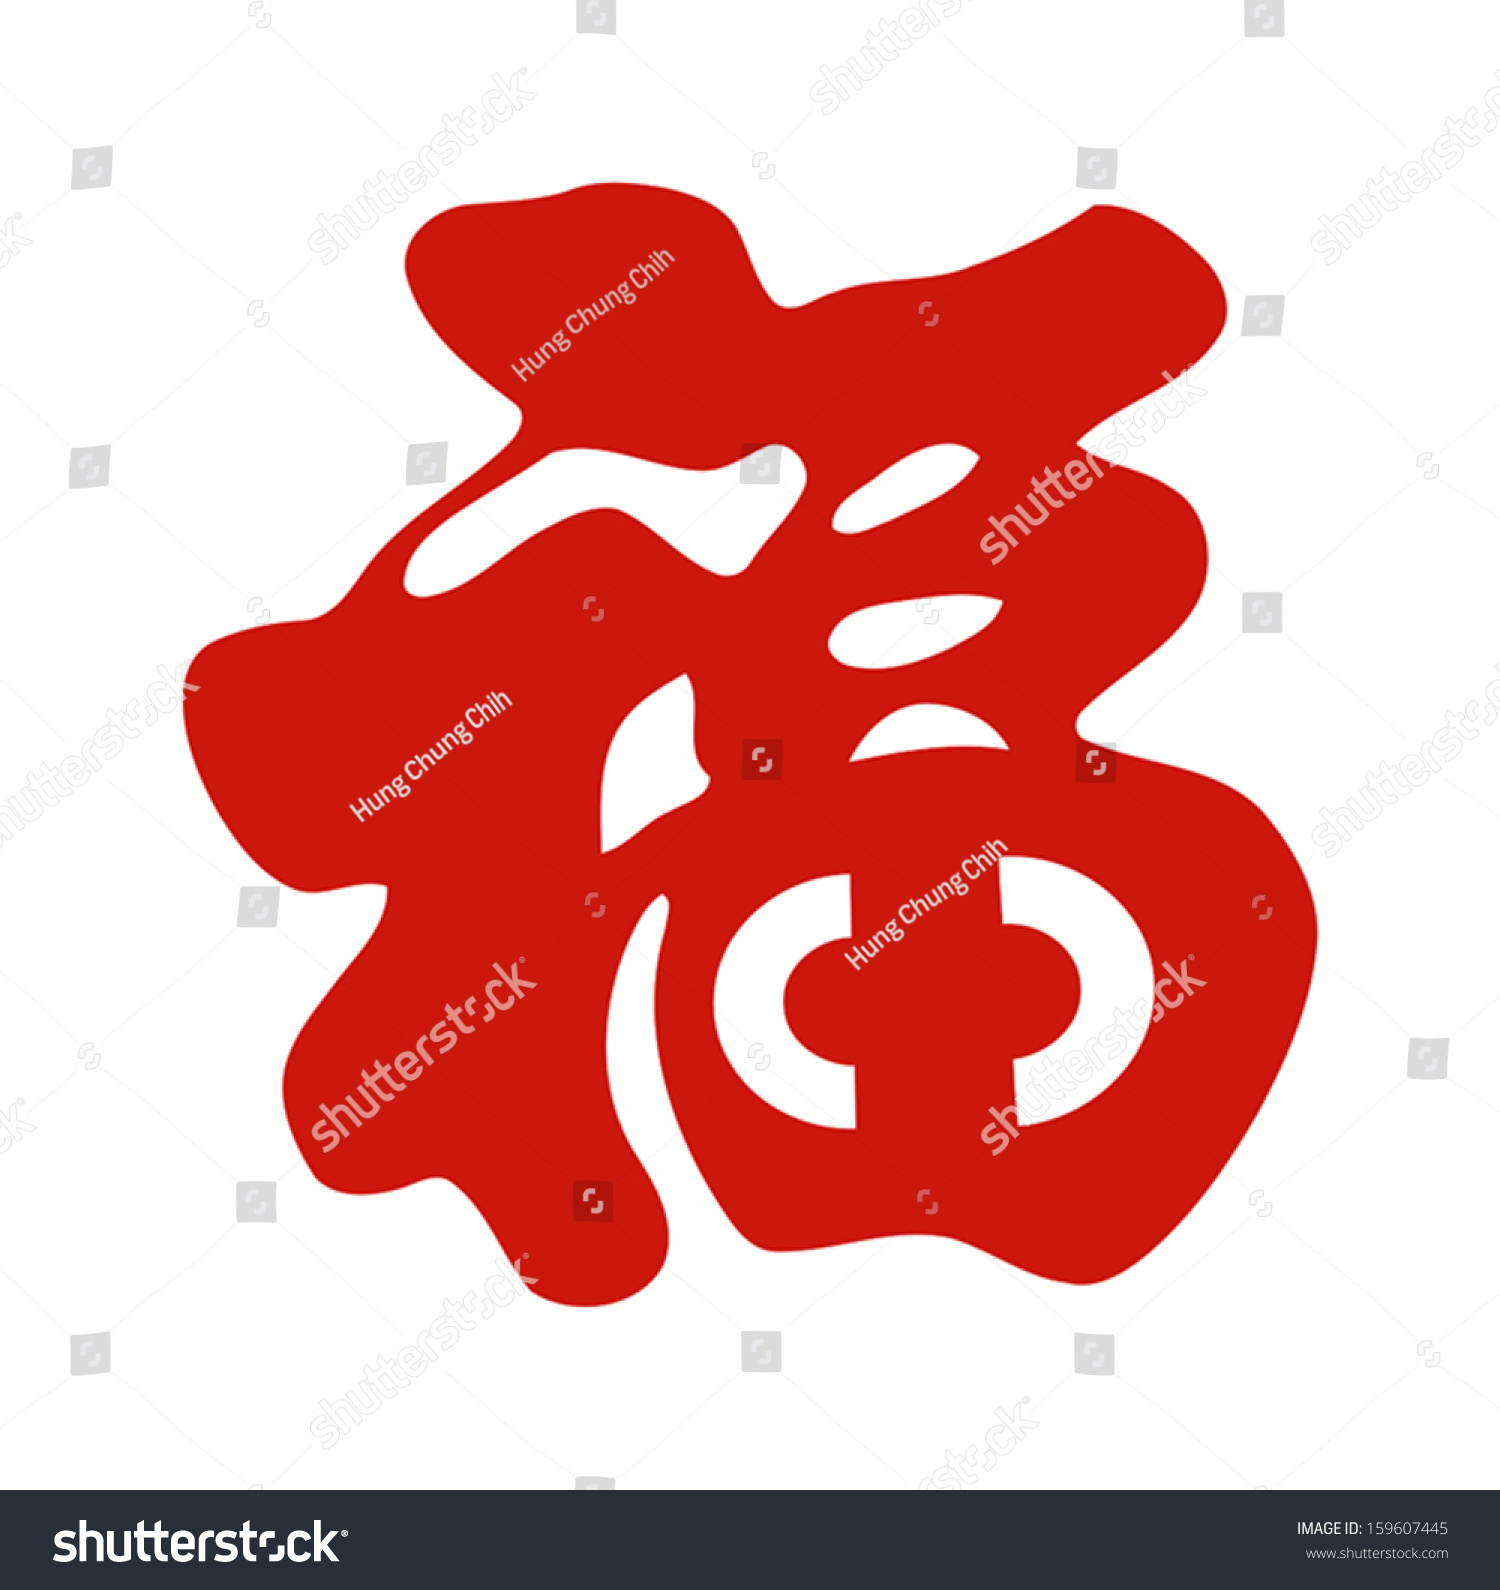 Happy chinese new year symbol fortune stock vector 159607445 happy chinese new year symbol for fortune happiness and good luck vector biocorpaavc Choice Image